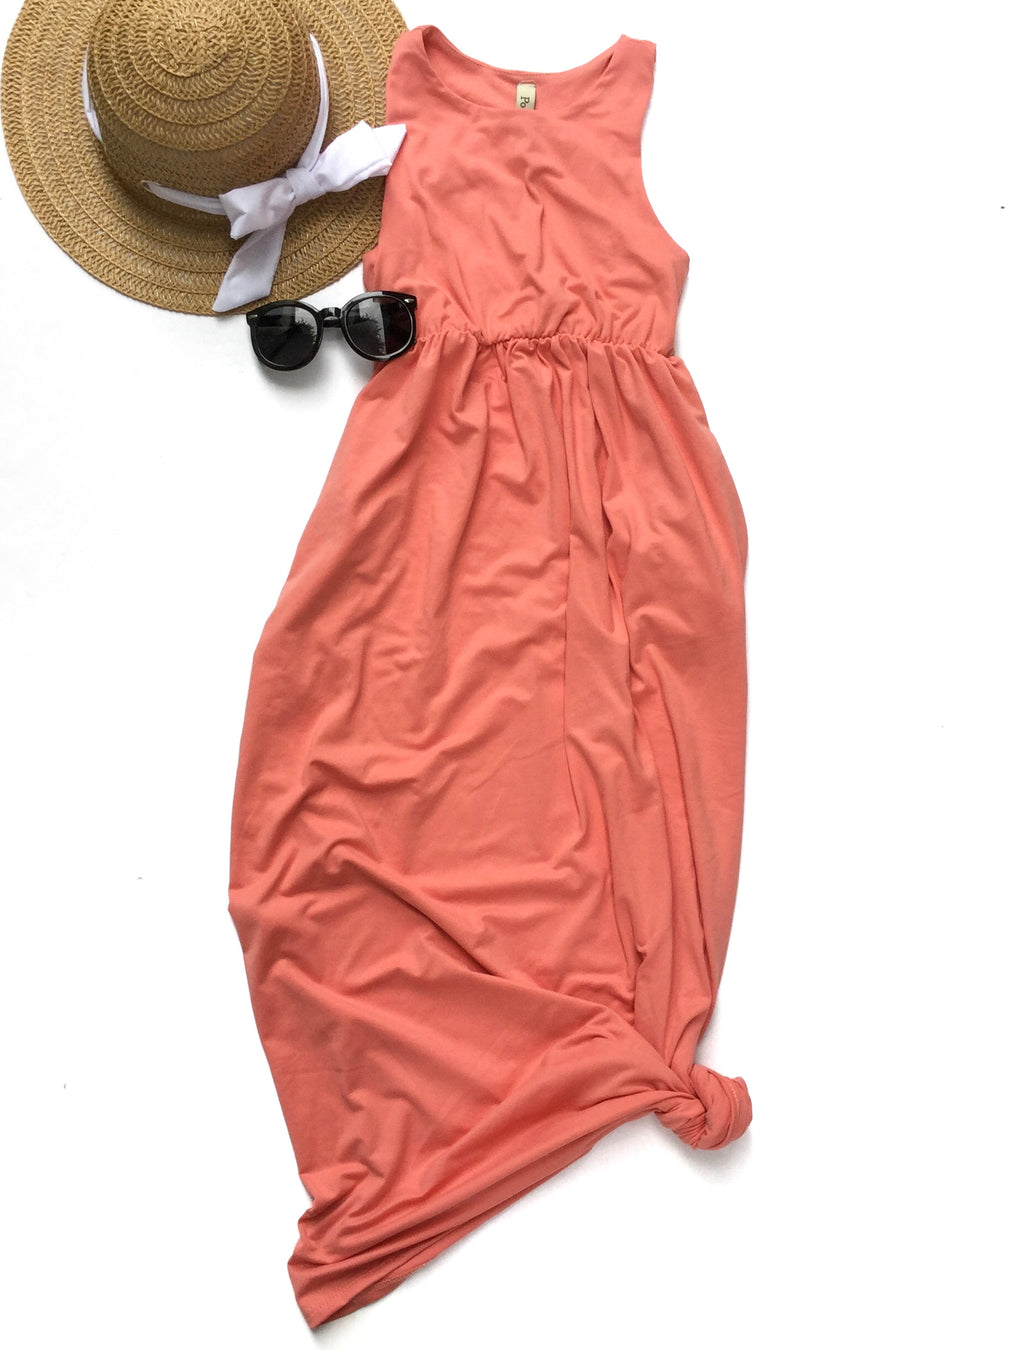 Childrens sleeveless coral maxi dress